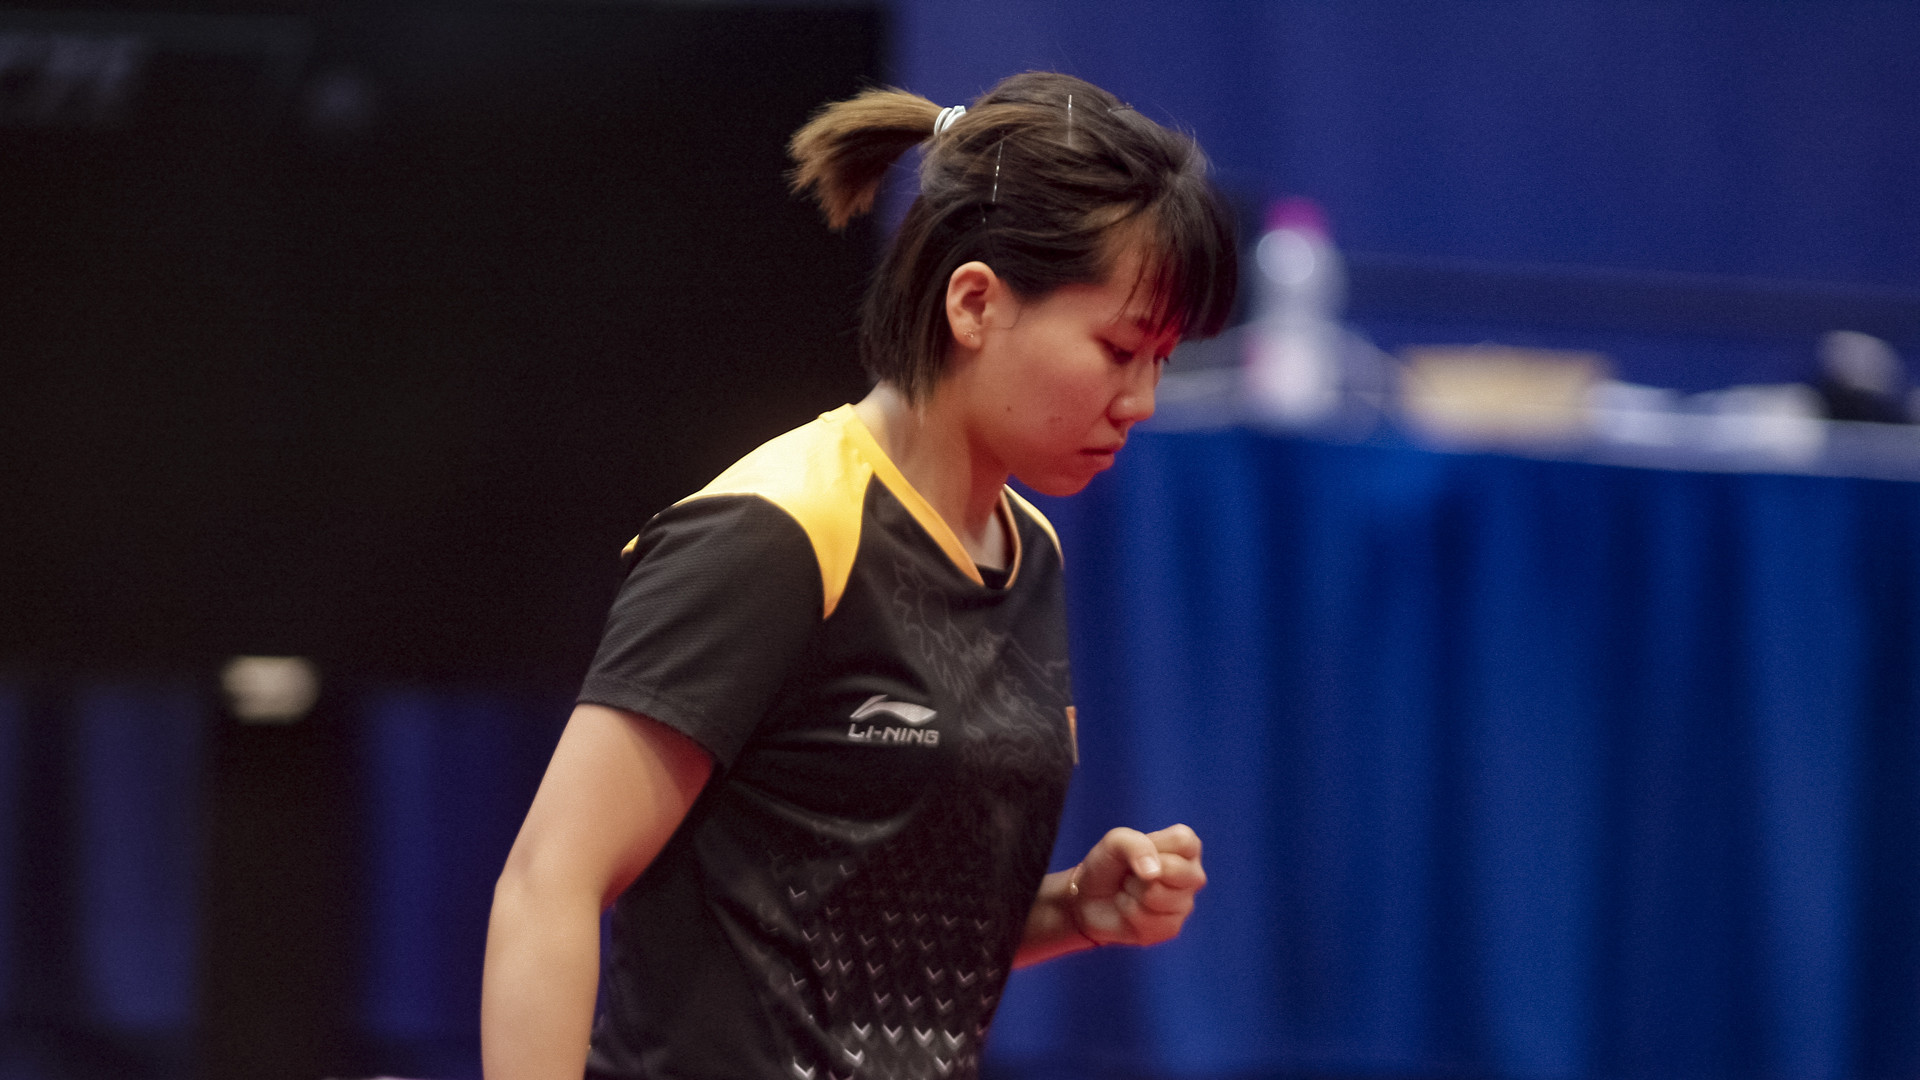 China's Chen Xingtong was extremely impressive as she beat third-seeded Japanese Miu Hirano in the round of 16 in the women's singles event ©ITTF